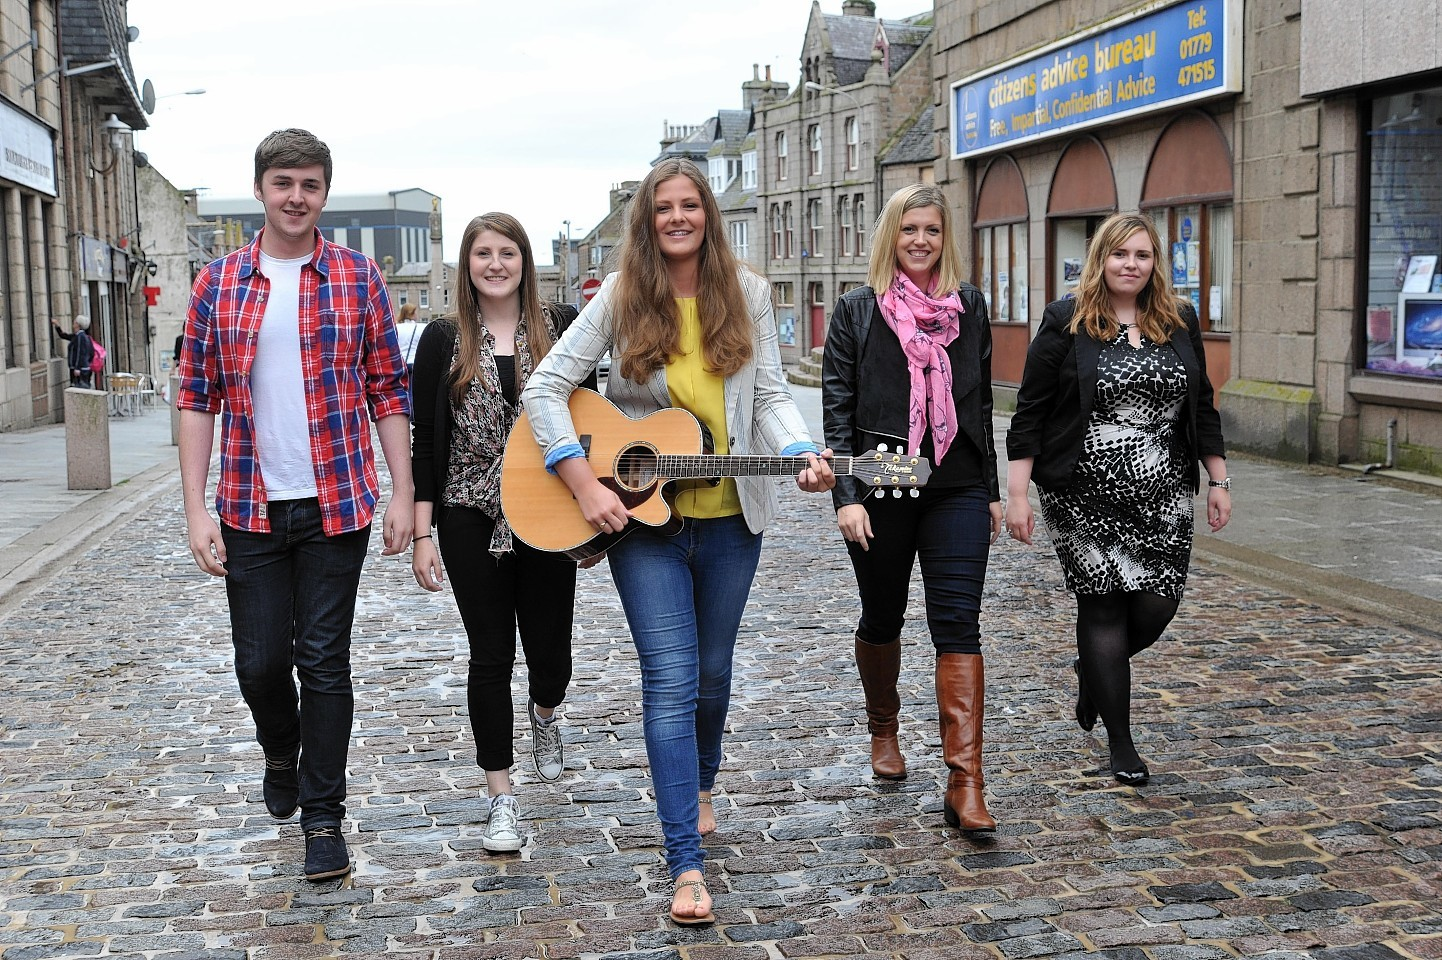 A troupe of talented north-east performers will present Oh What a Night at Peterhead Community Centre in aid of the Anthony Nolan Trust, which supports research into blood cancer.